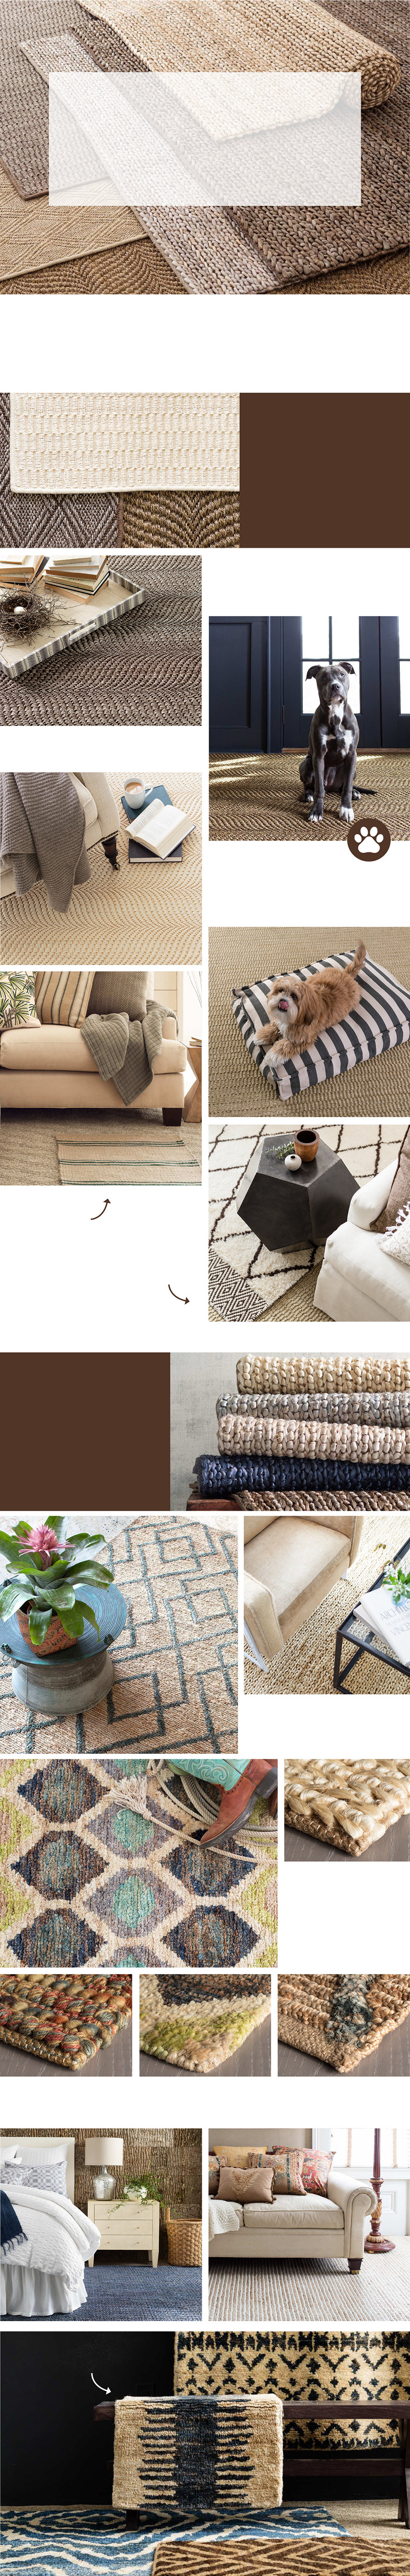 update need mcbride rug samples lauren rugs annie selke help